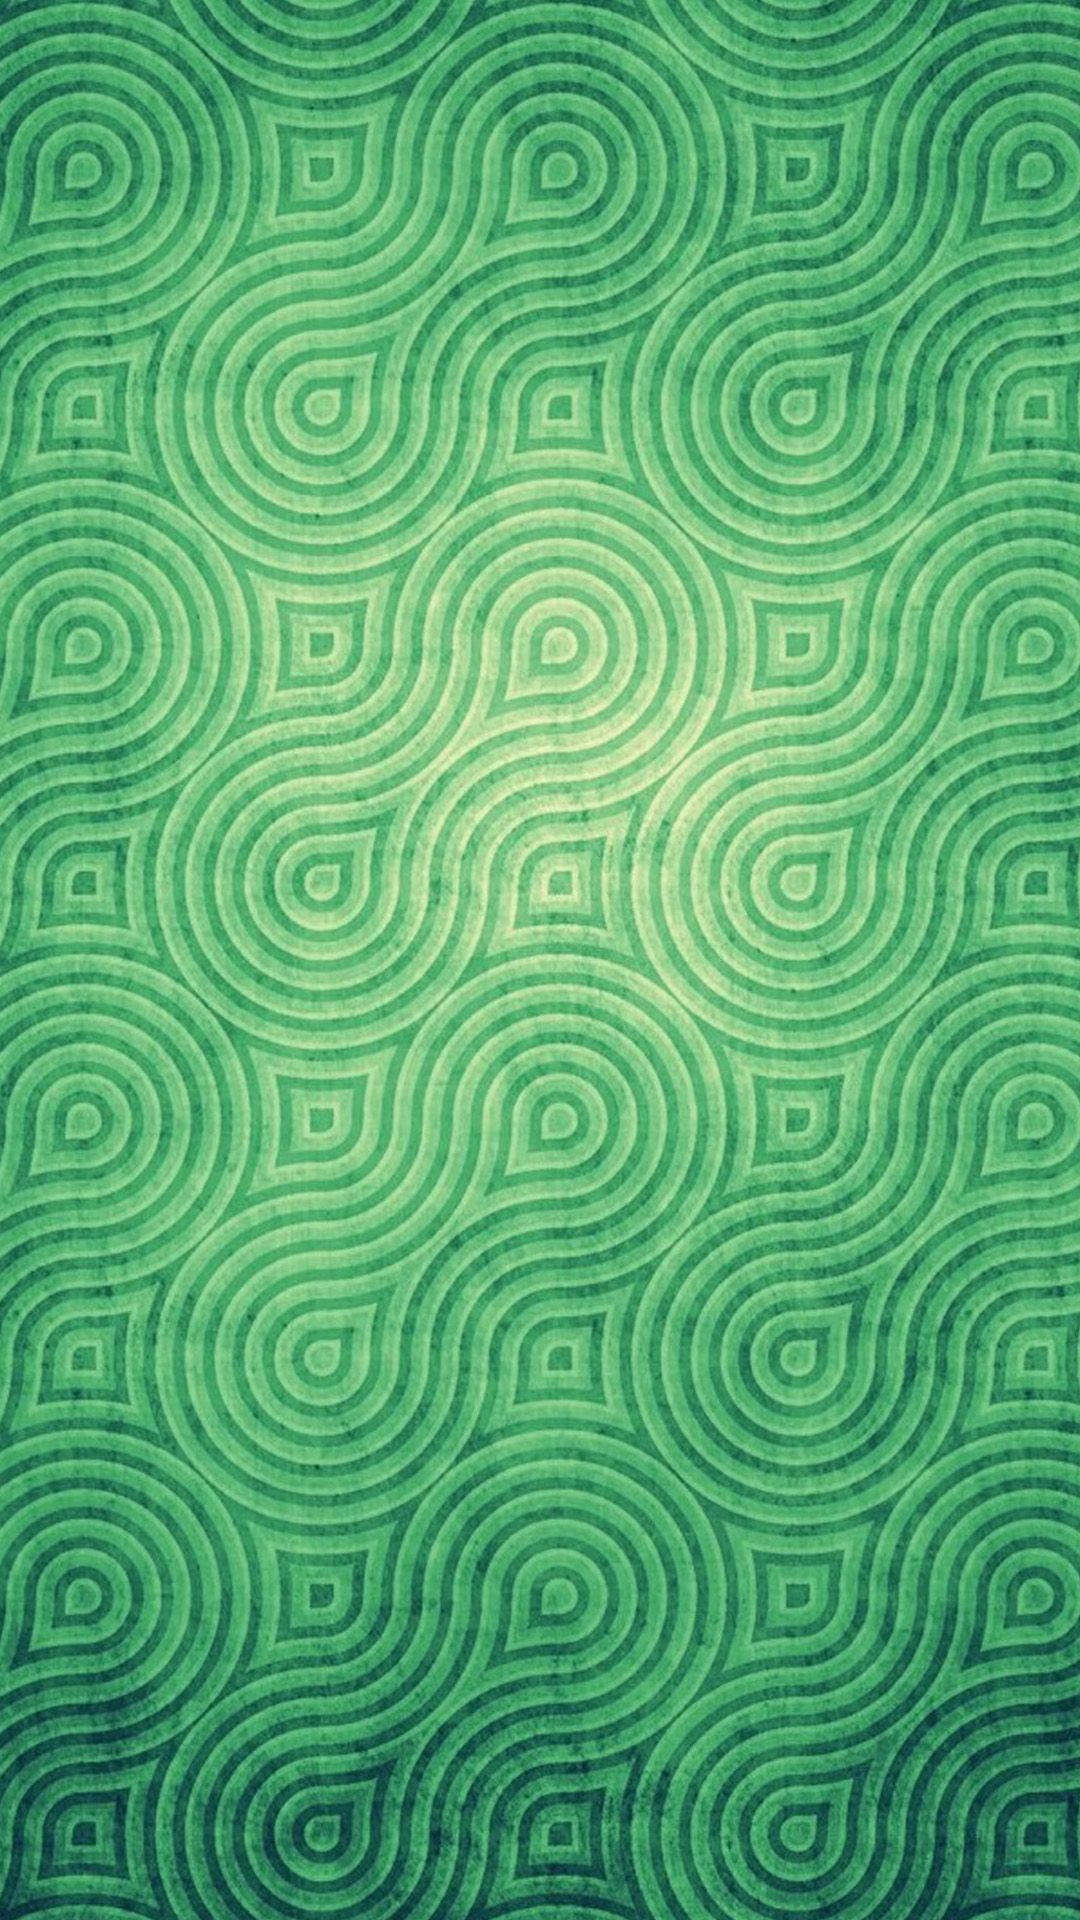 Green texture Best htc one wallpapers free and easy to